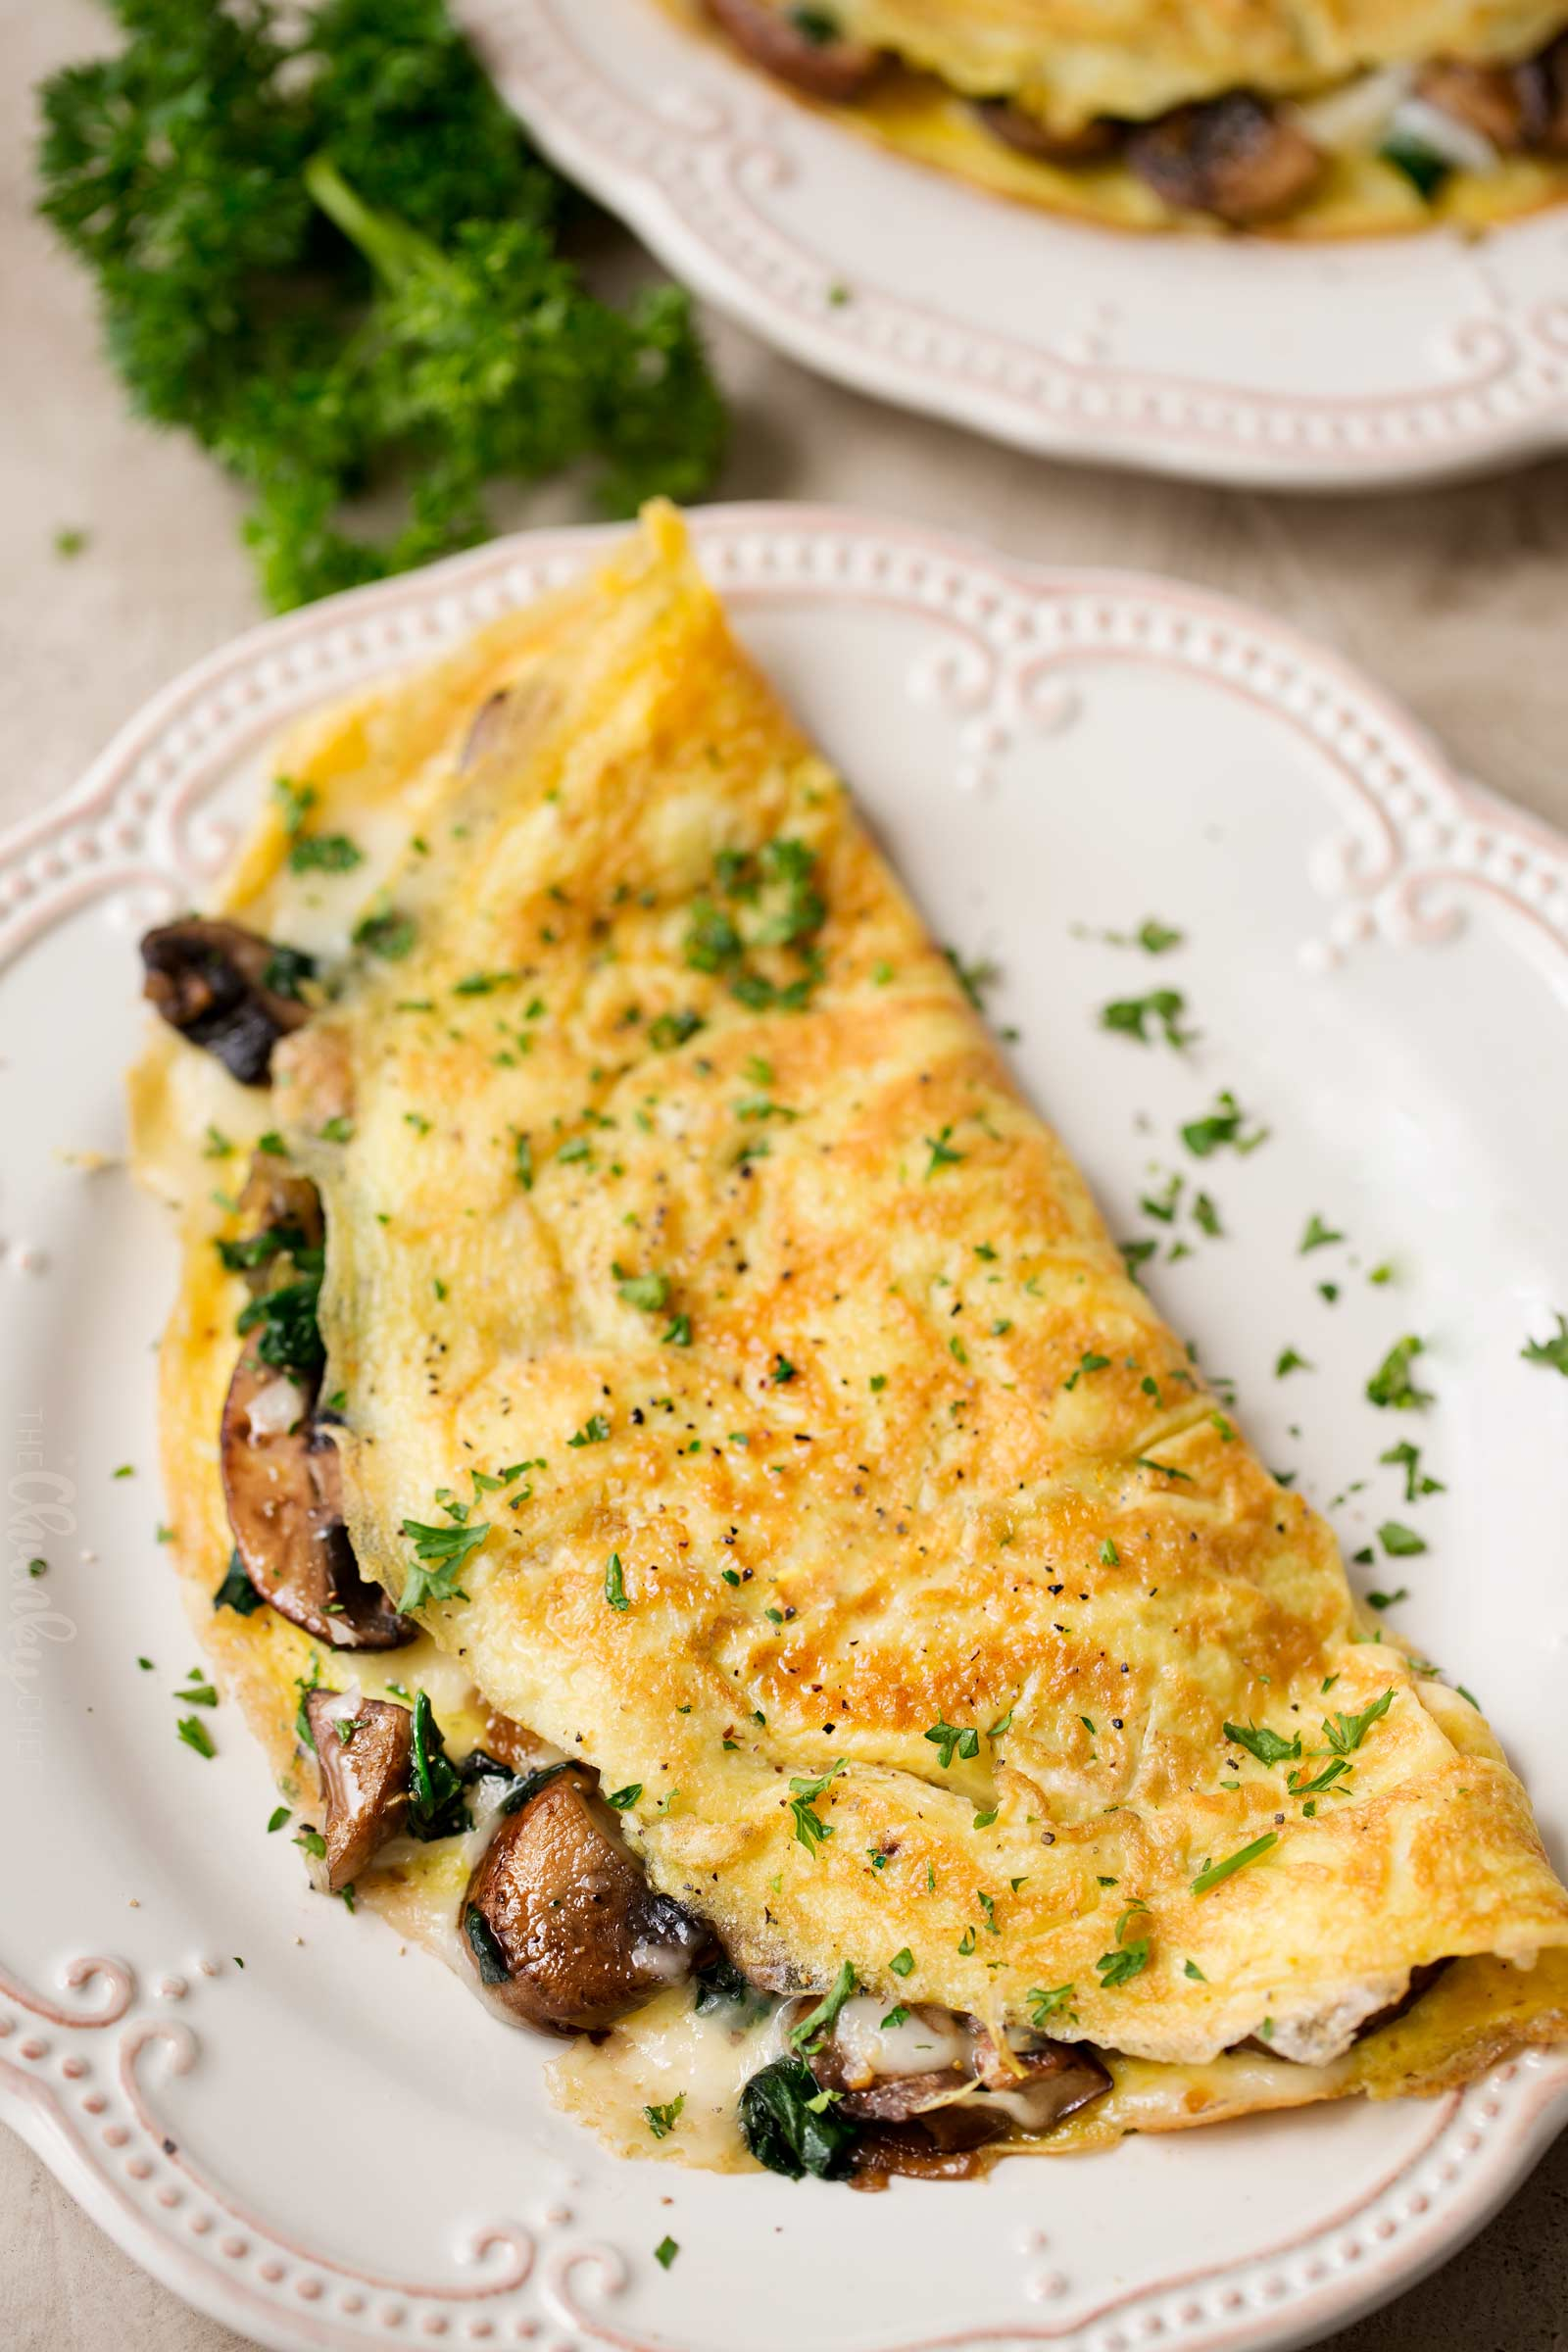 Cheesy mushroom omelet on plate